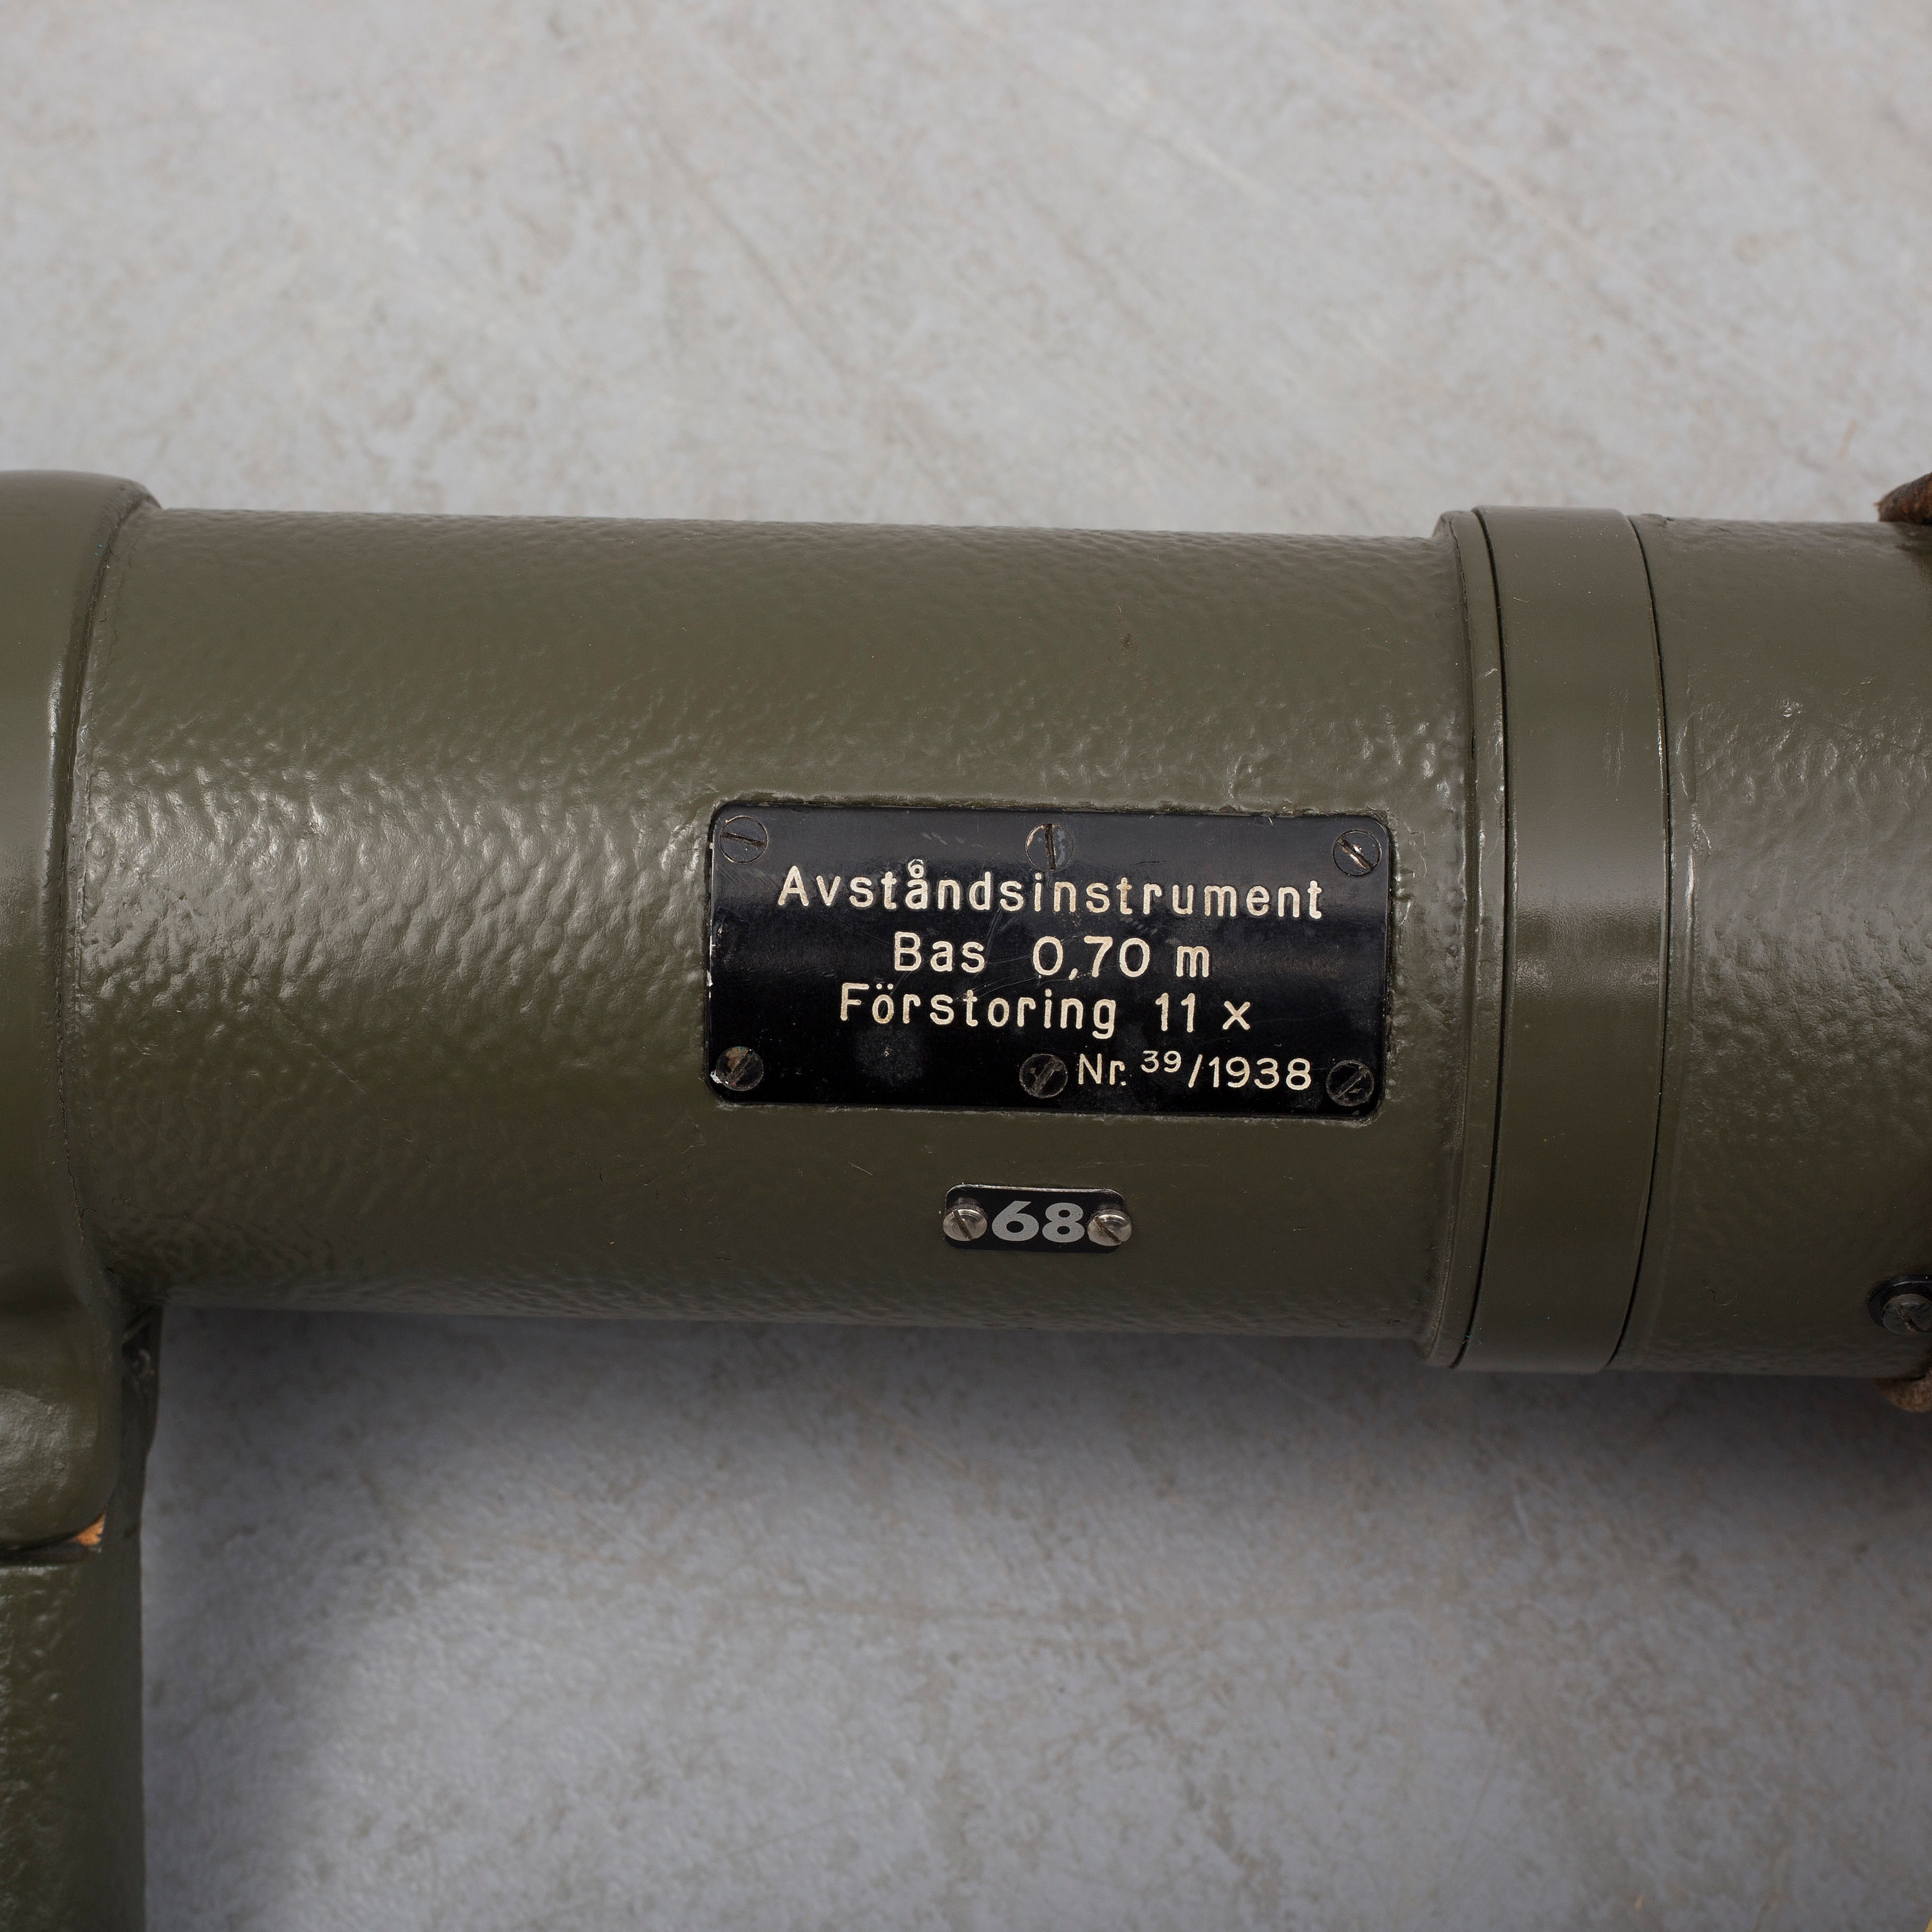 A Military Rangefinder with Carl Zeiss lenses used in the